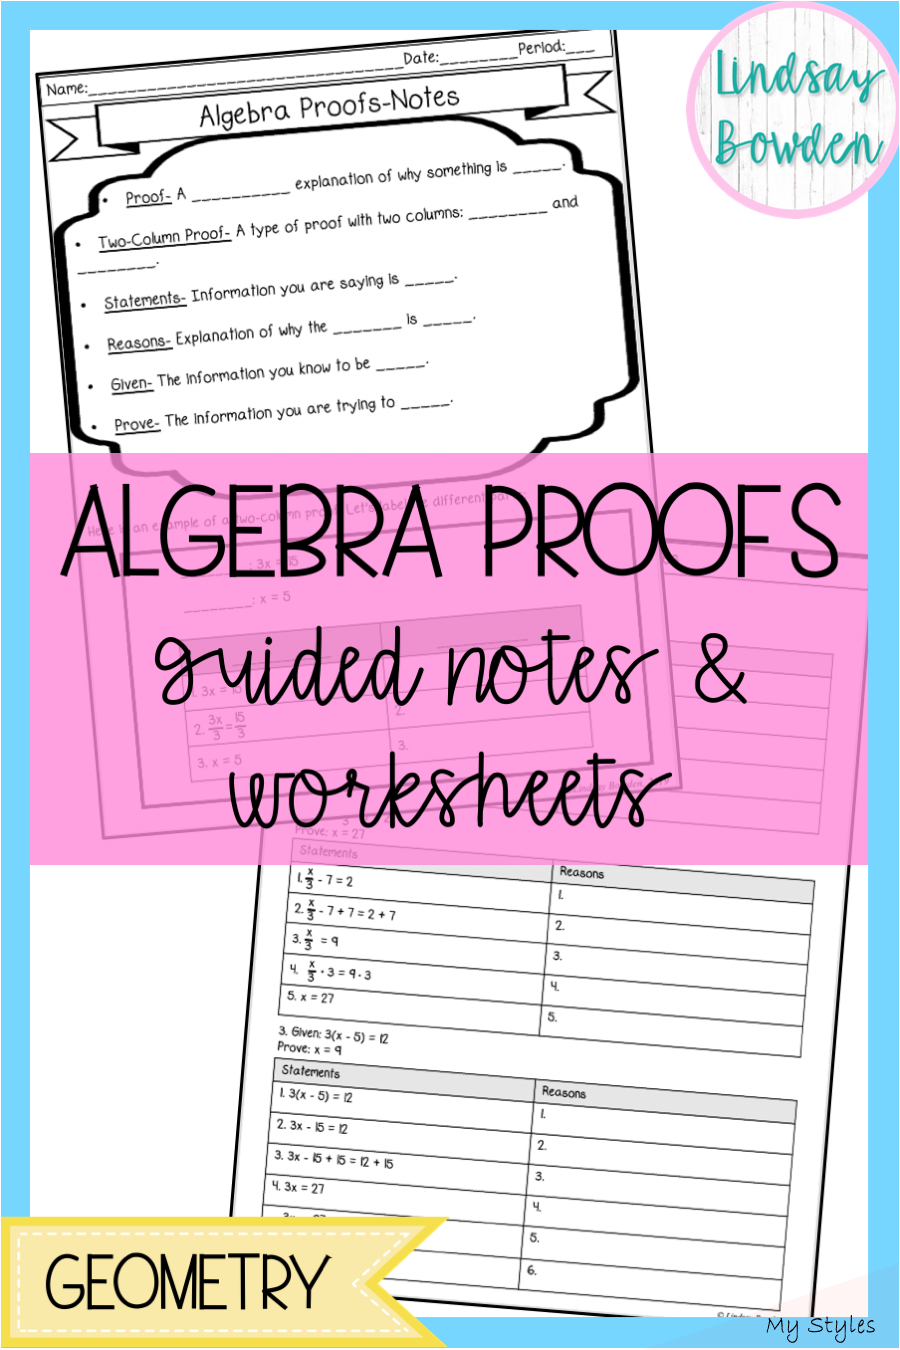 Aug 20, 2019 Algebra Proofs lesson! This is a great